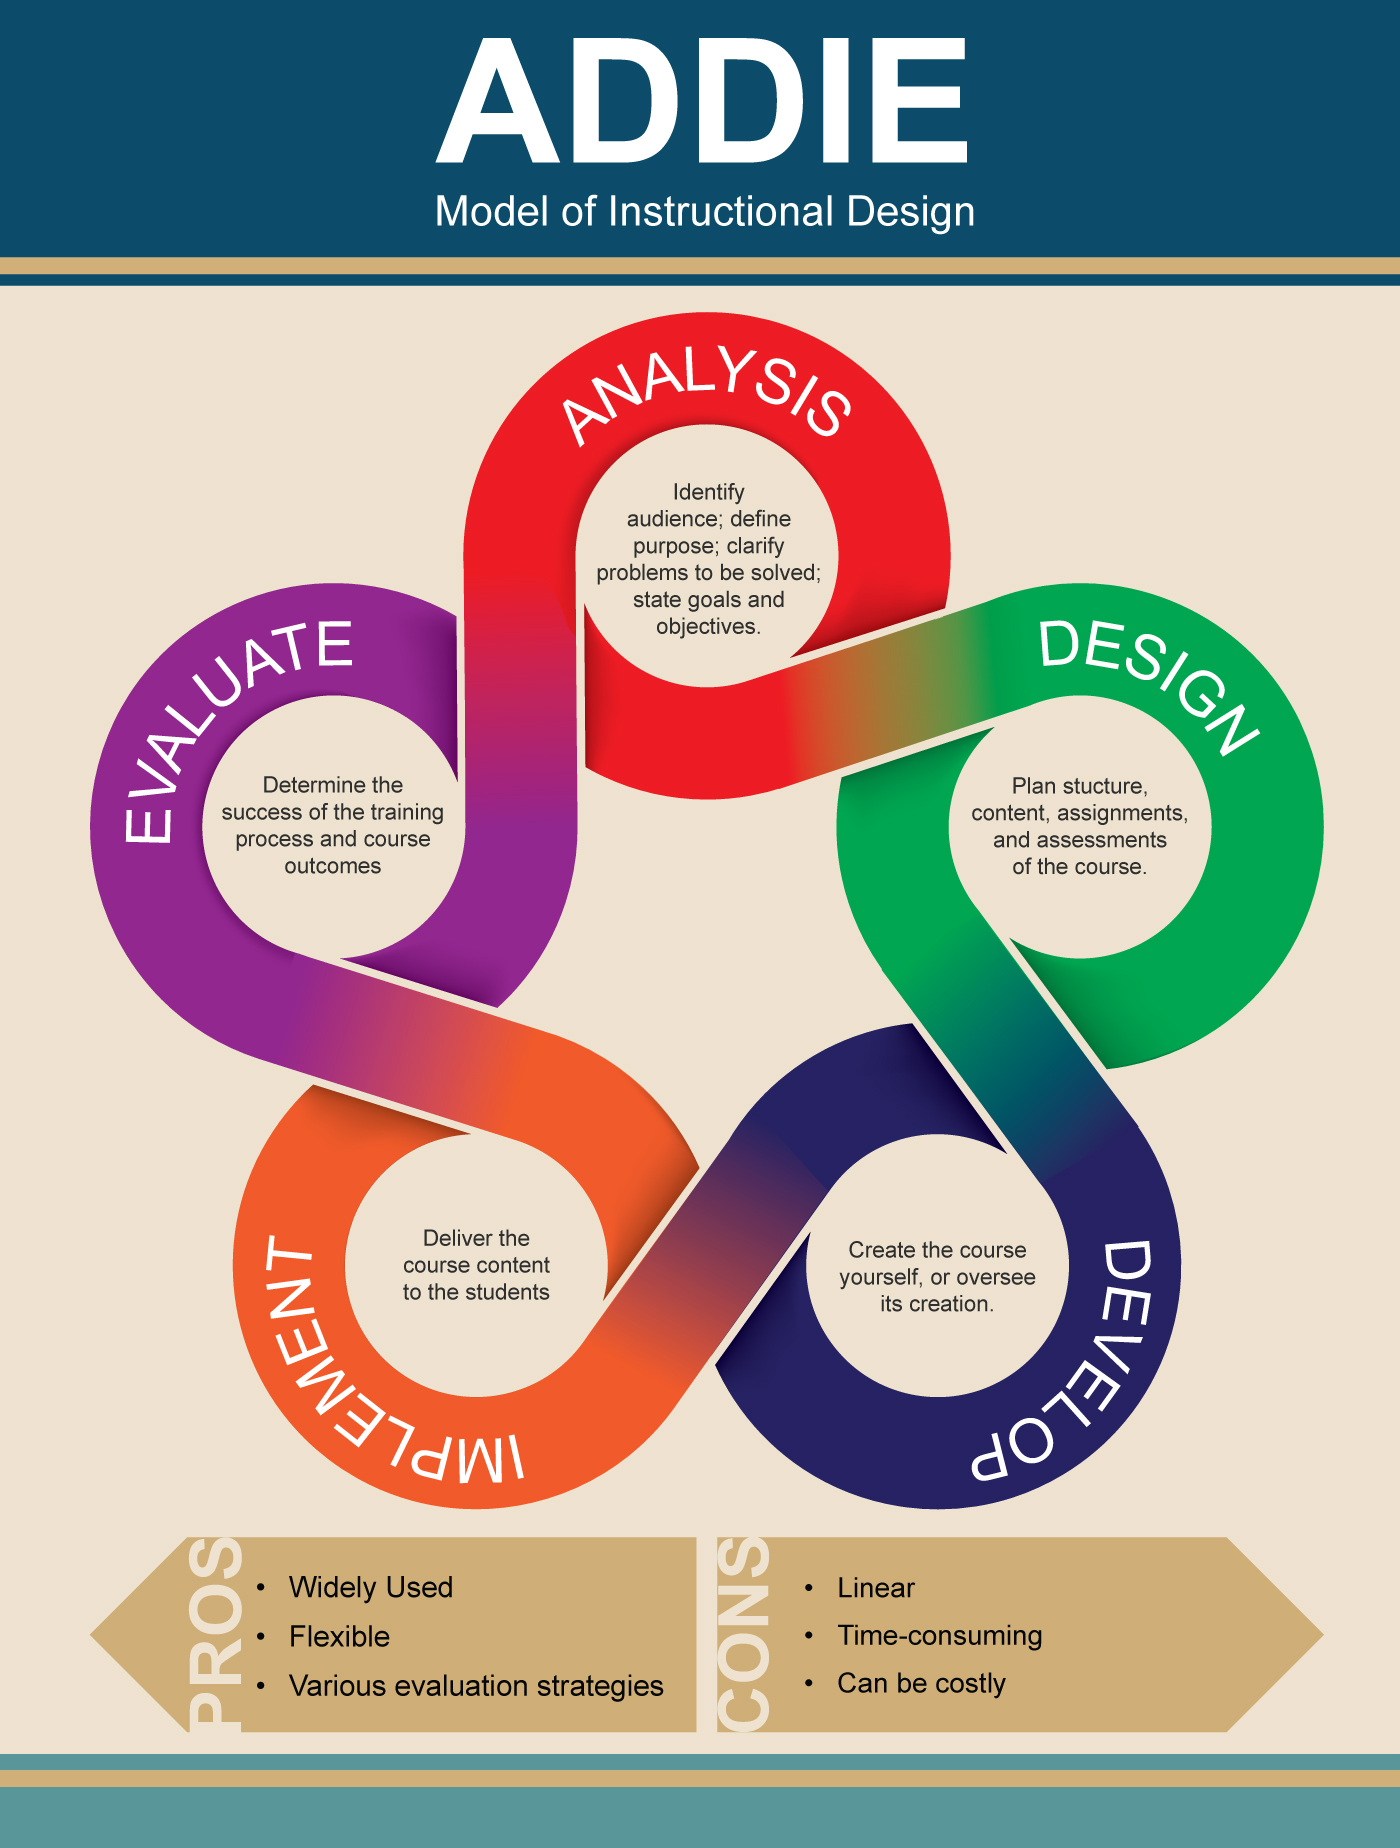 ADDIE Model of Instructional Design on Behance